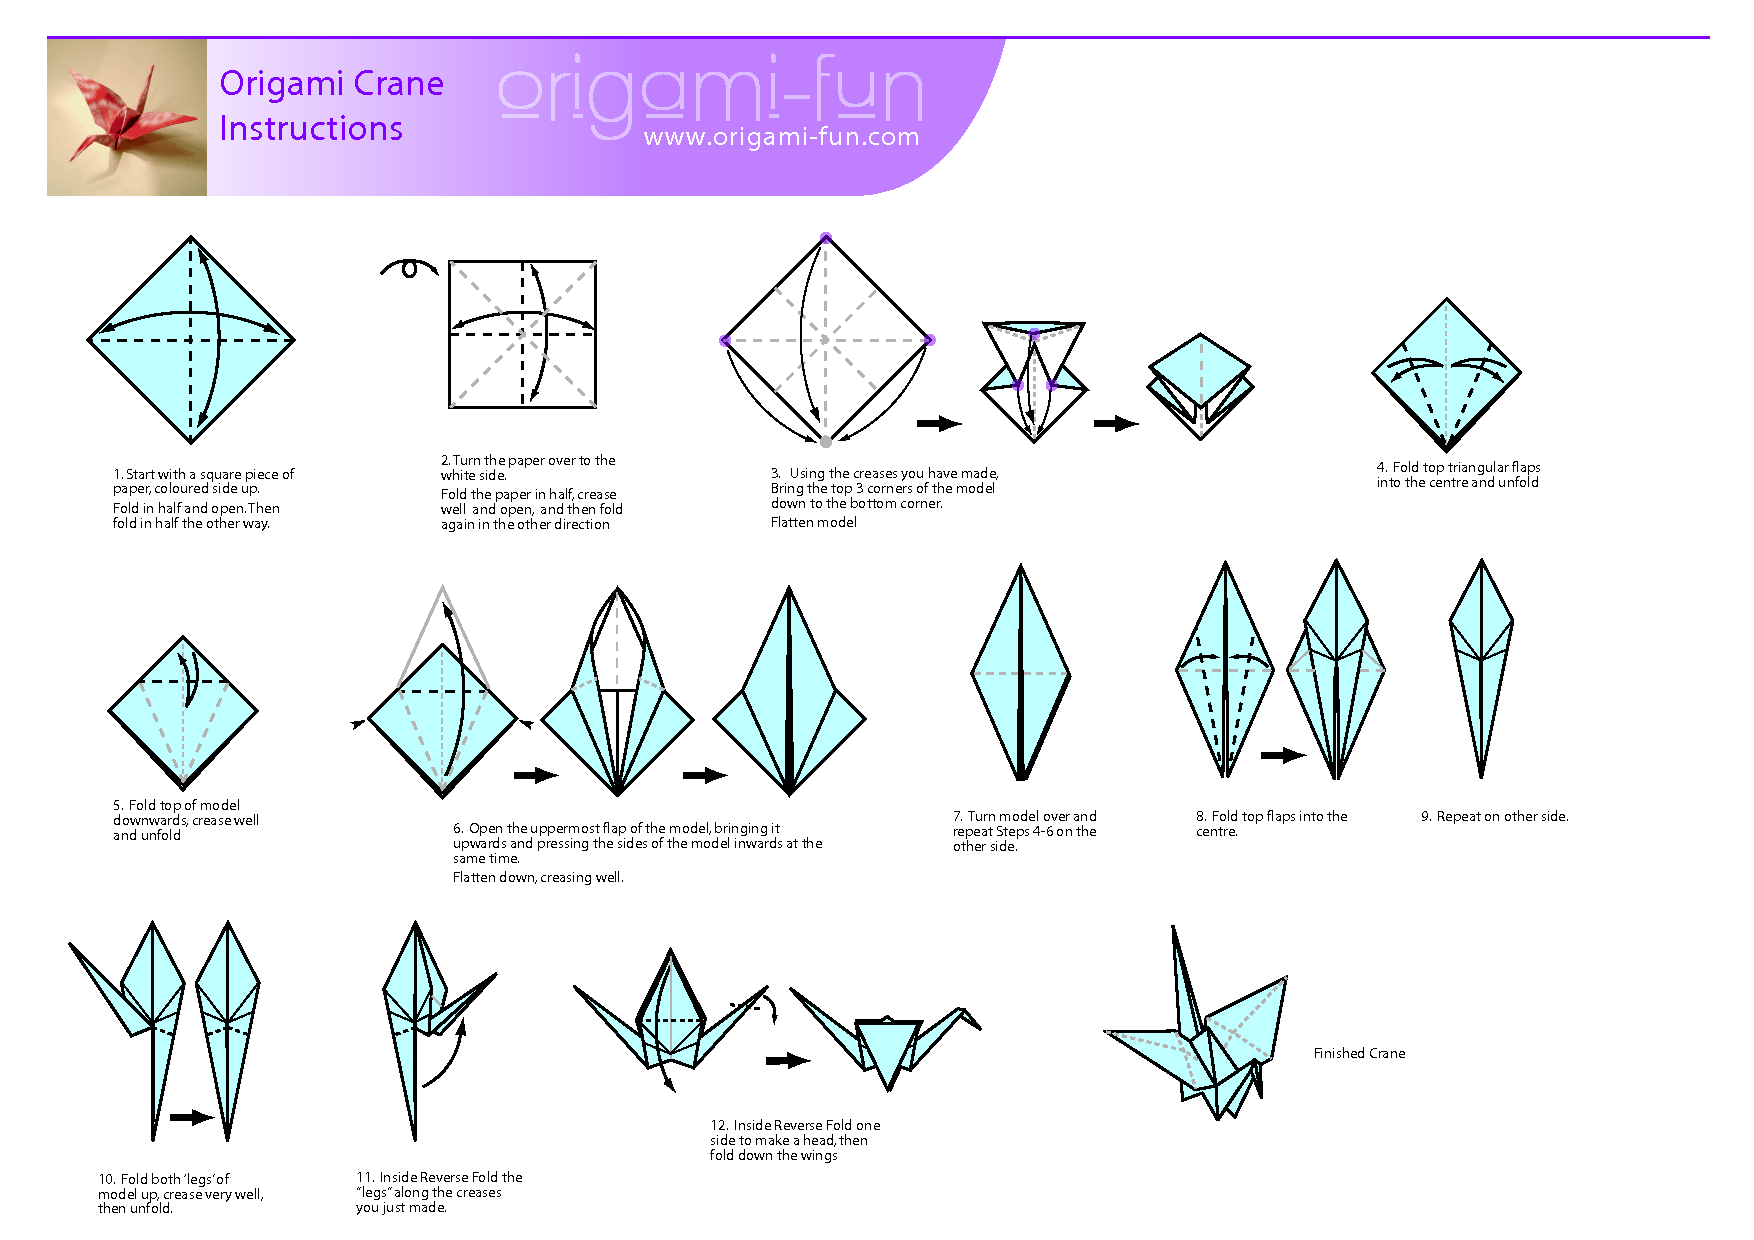 pin by engedi ming on origami origami origami swan origami rh pinterest com complete origami diagrams [ 1754 x 1240 Pixel ]